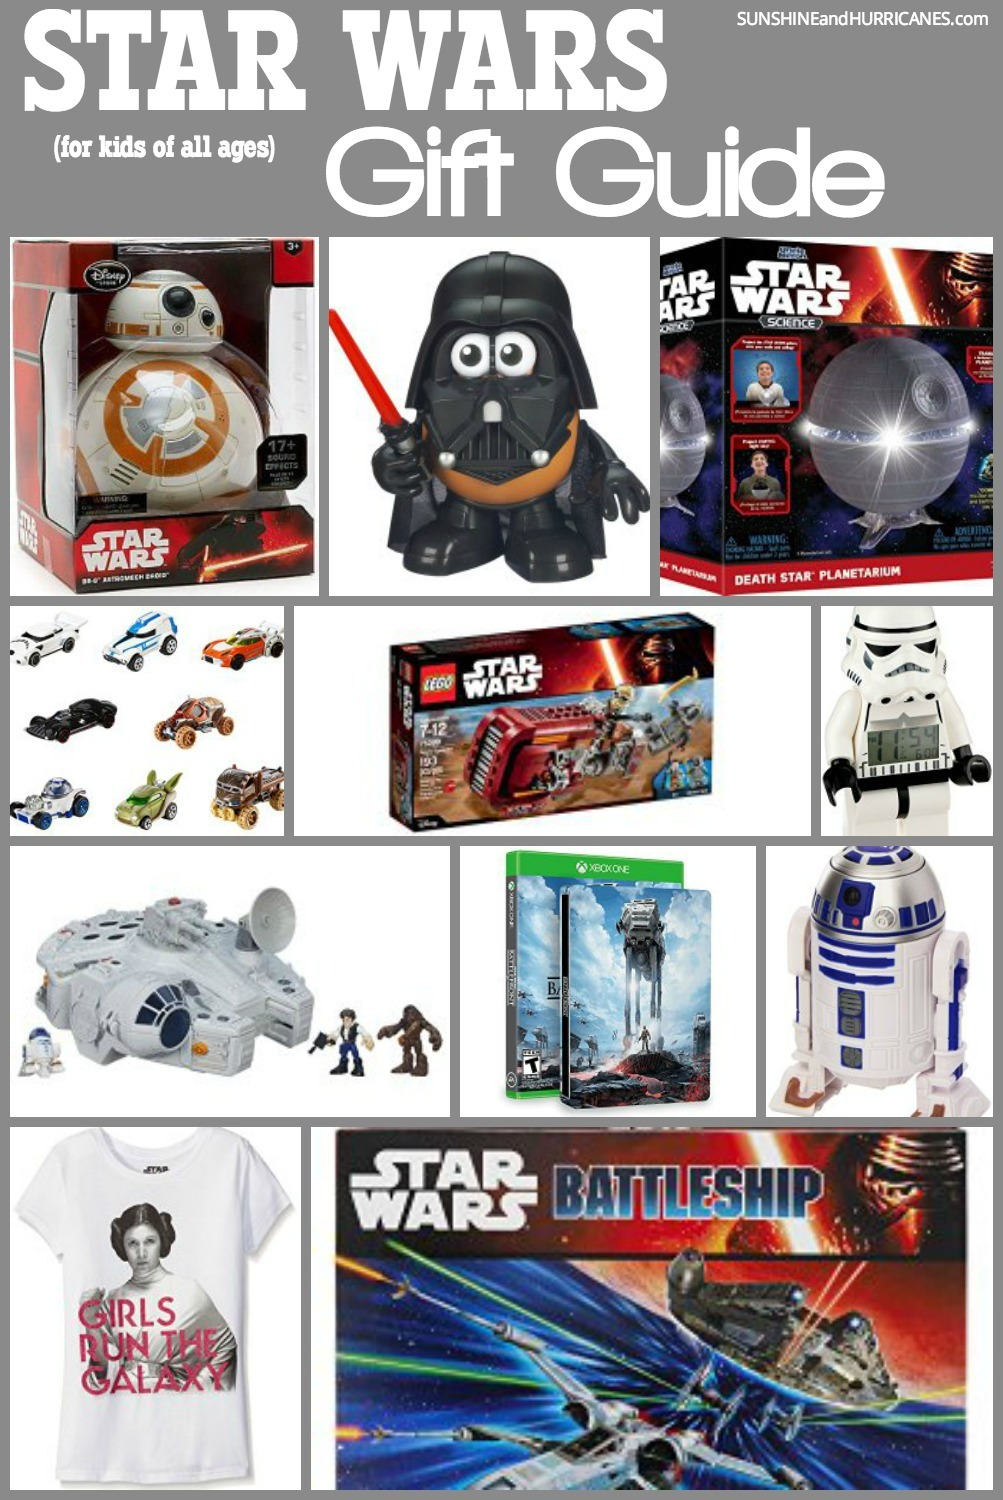 If you have a Star Wars fan (or three or four) in you family that this gift guide is for you. Filled with all the MOST popular gift ideas for kids of all ages, you'll find something here for everyone. Great for holiday gifts, Birthday gifts, Father's Day gifts and more! SunshineandHurricanes.com